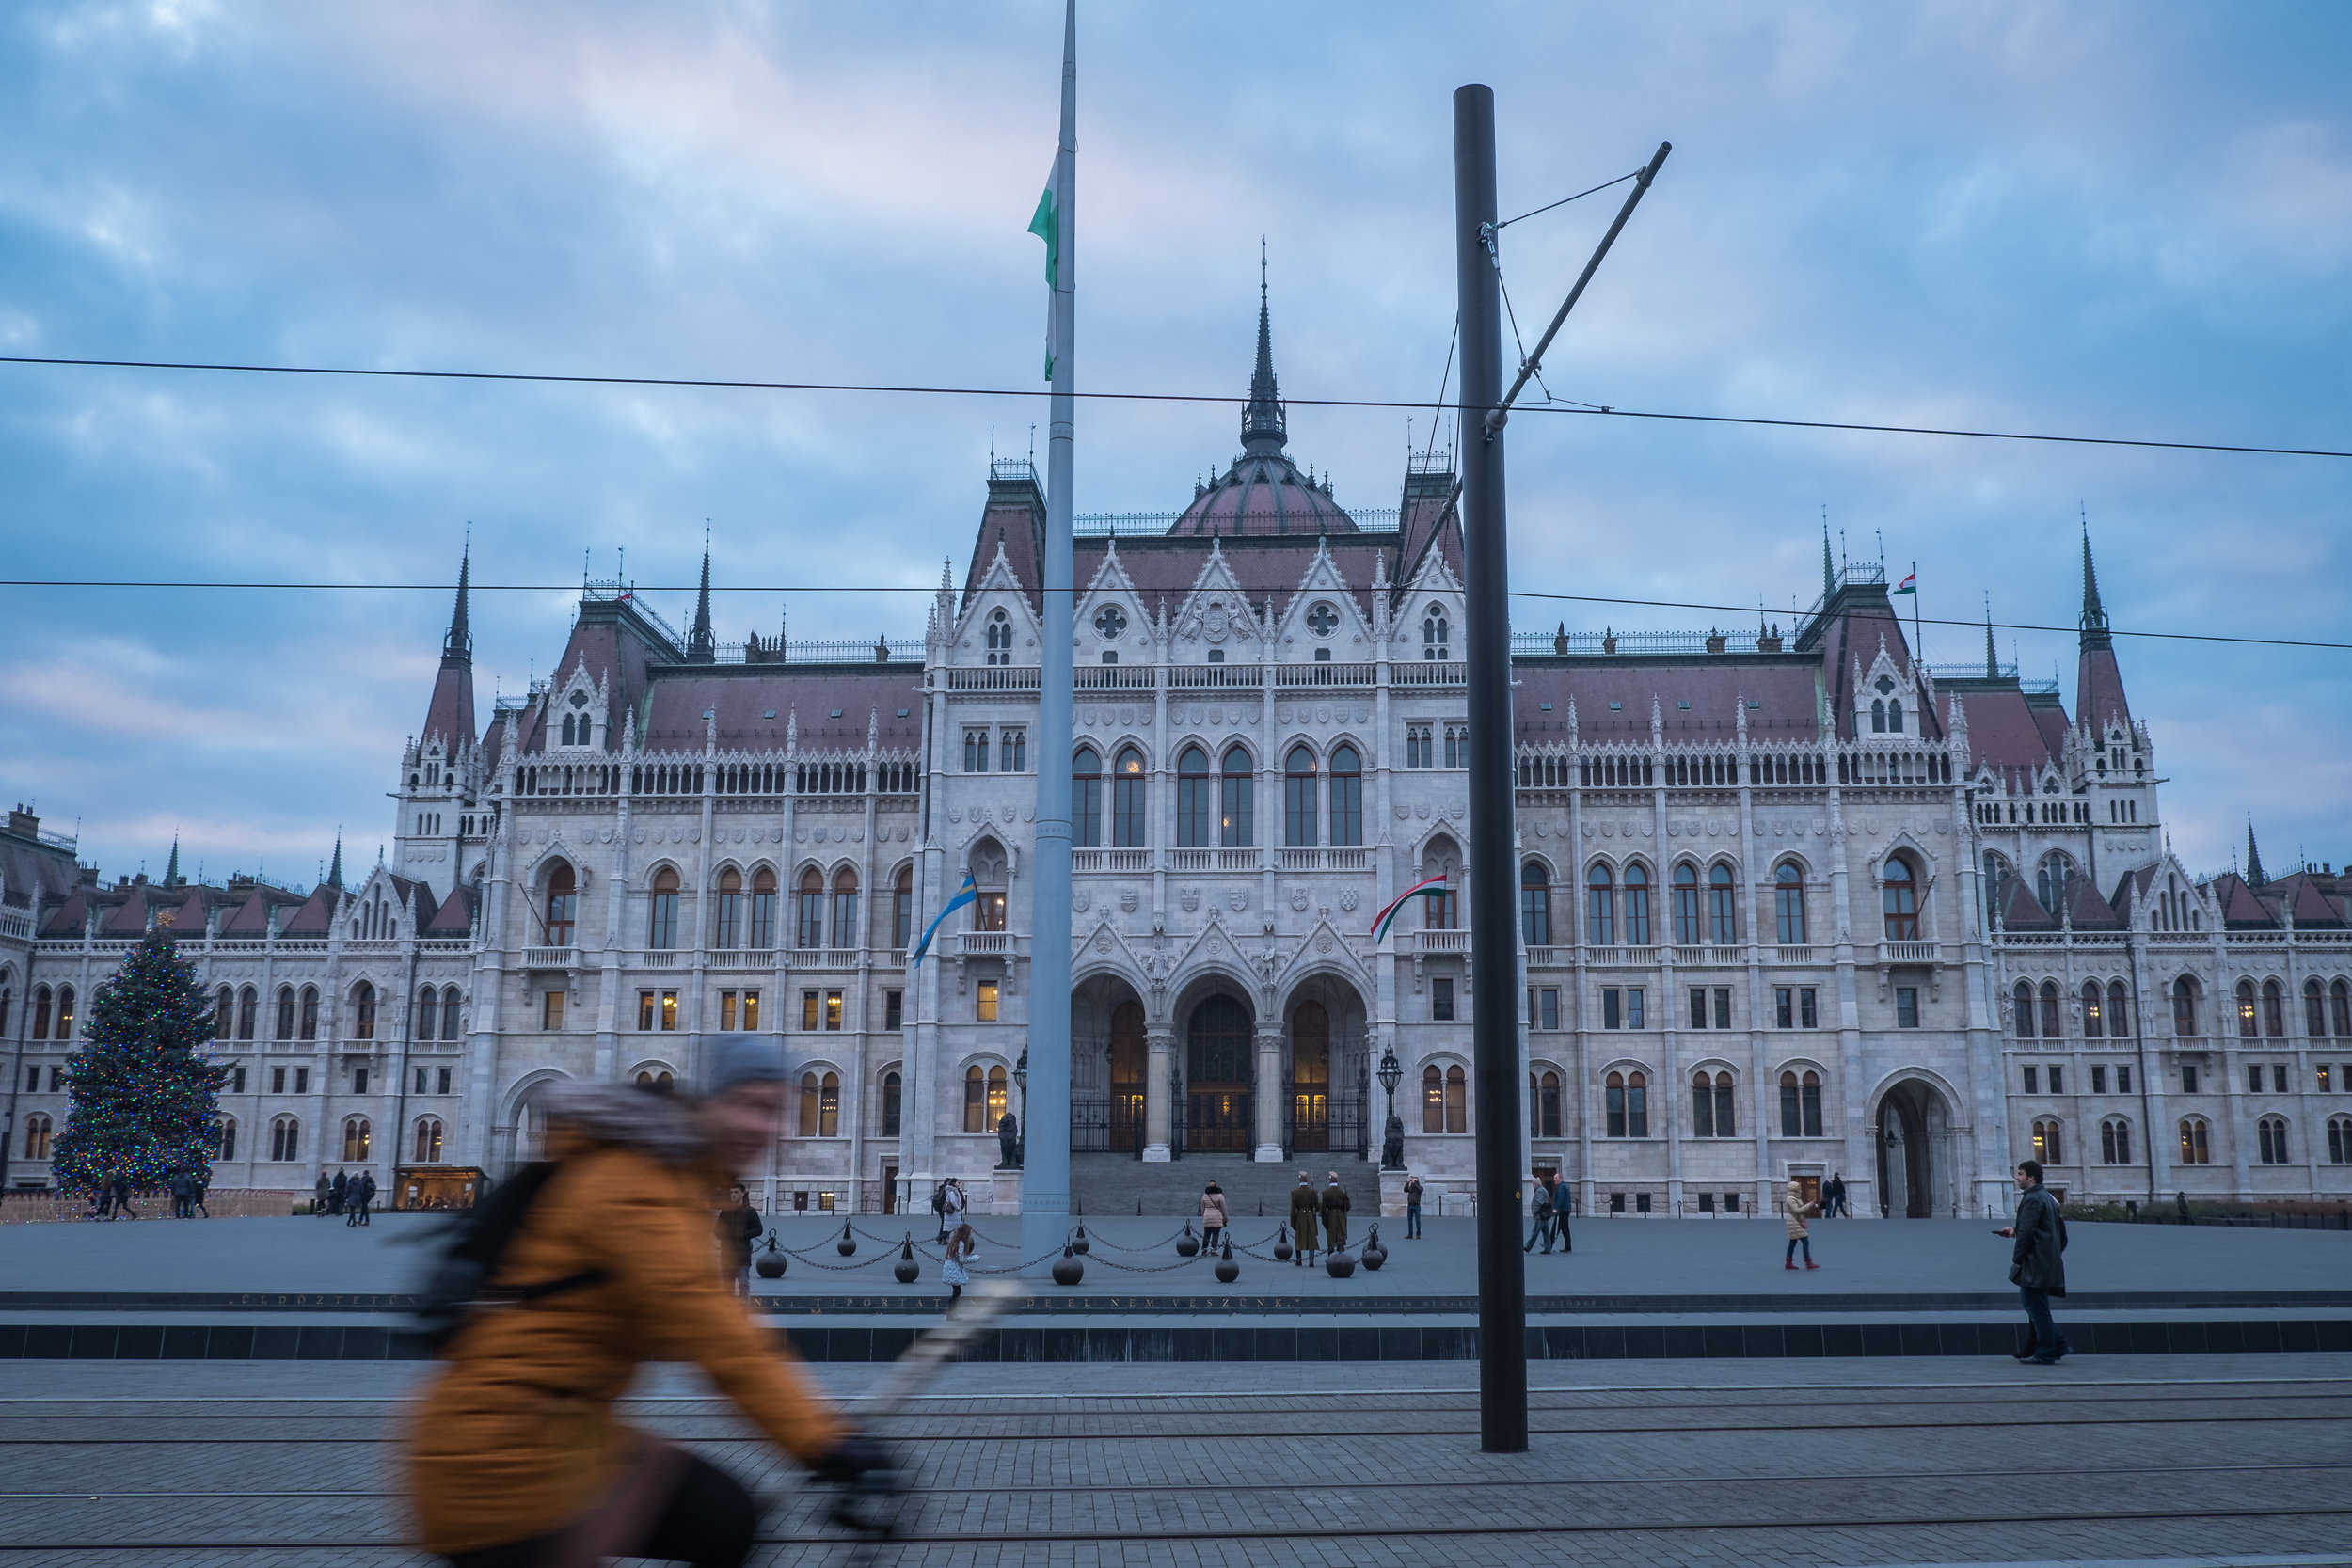 cycling past the Hungarian Parliament Building